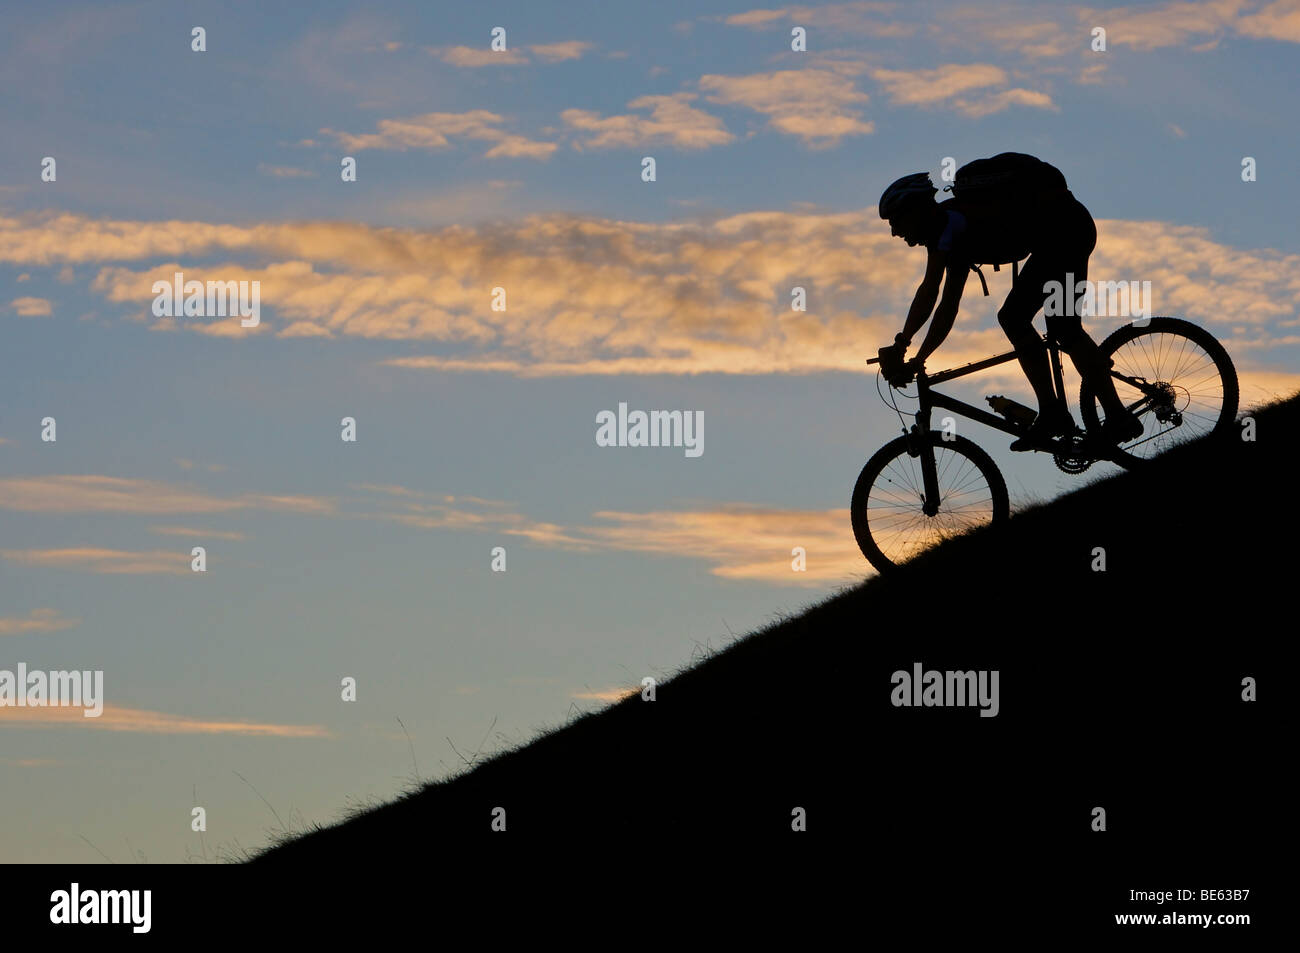 Mountainbiker, silhouette at Hohe Salve mountain in the evening light, Tyrol, Austria, Europe - Stock Image